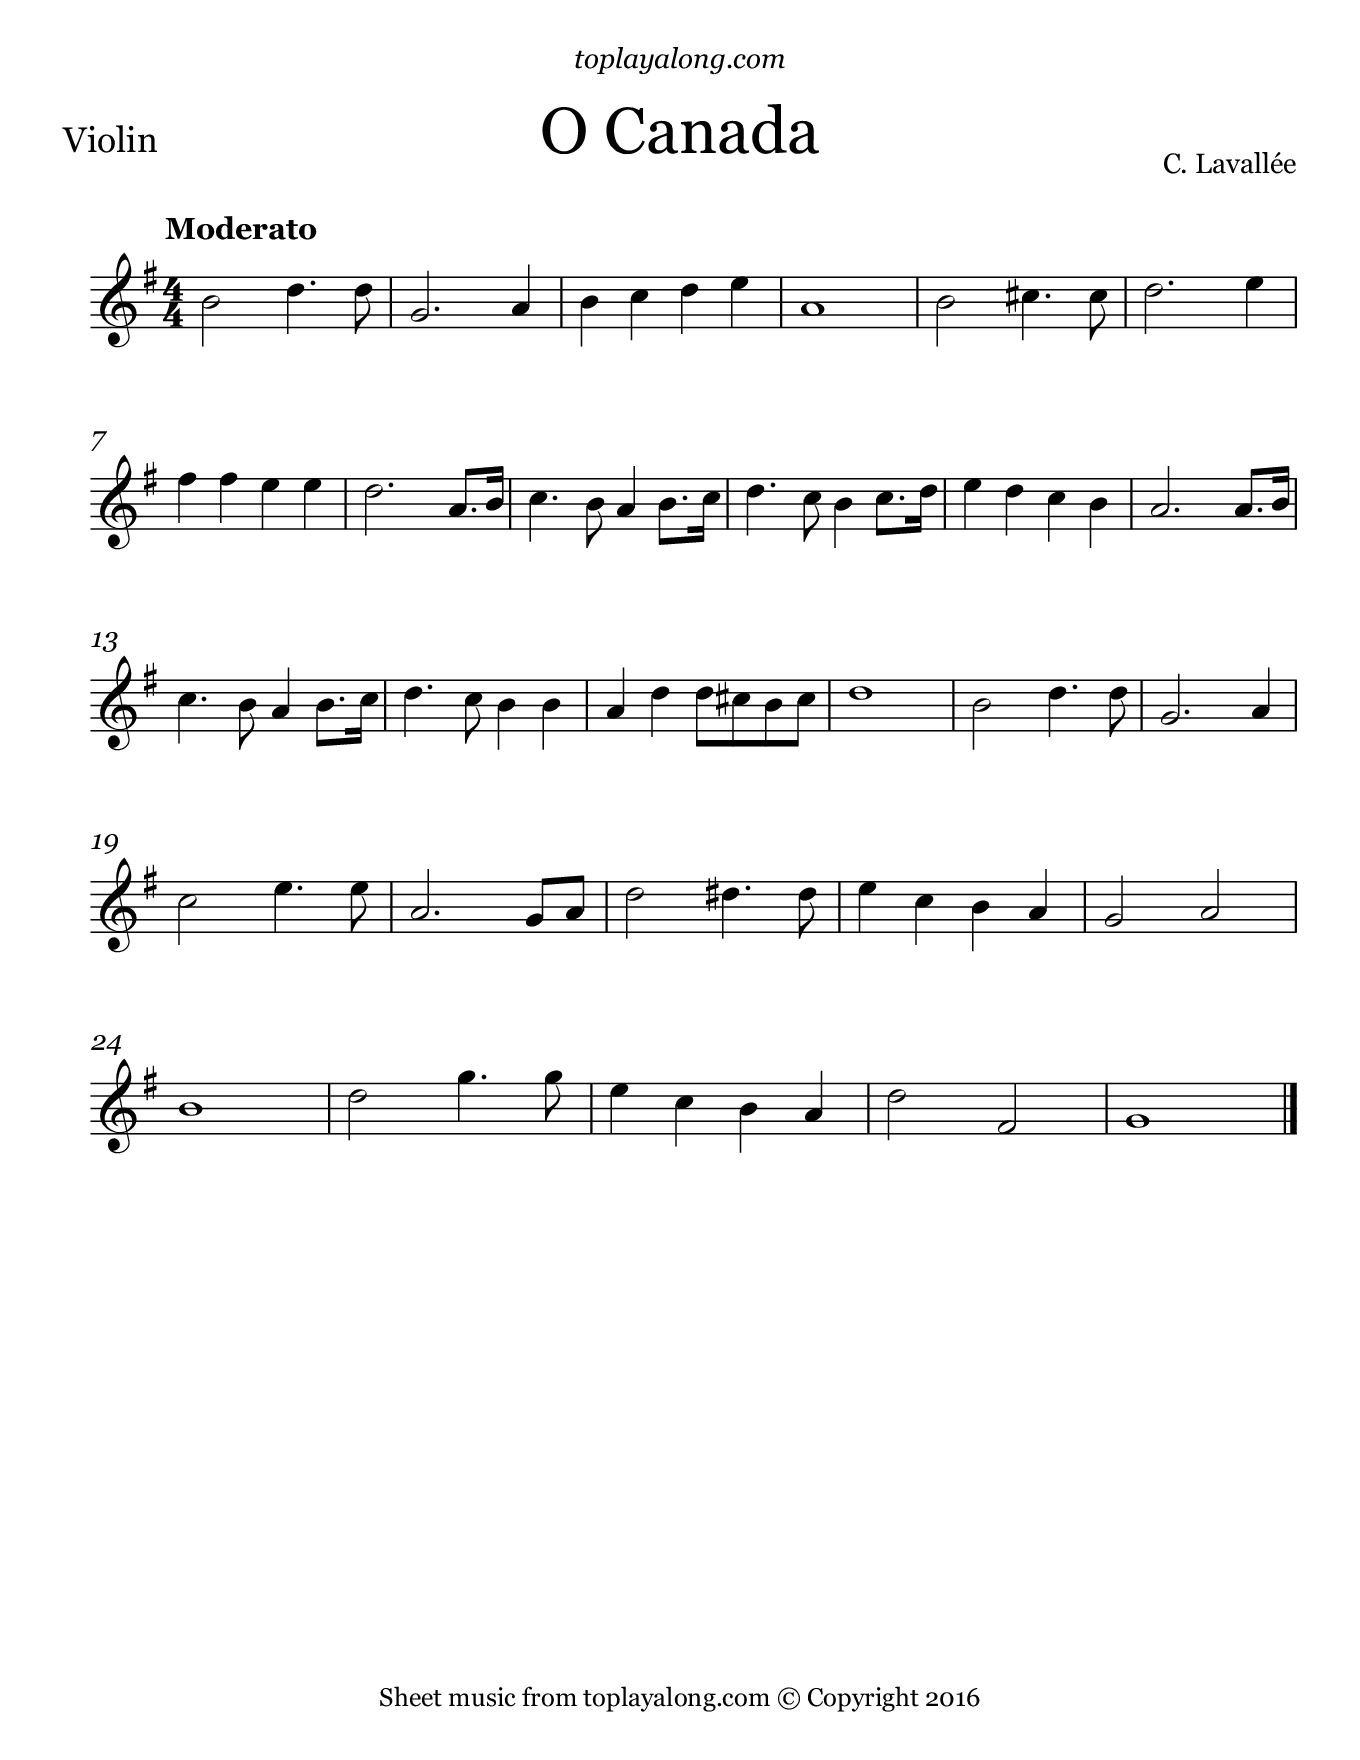 O Canada. Sheet music for Violin, page 1.